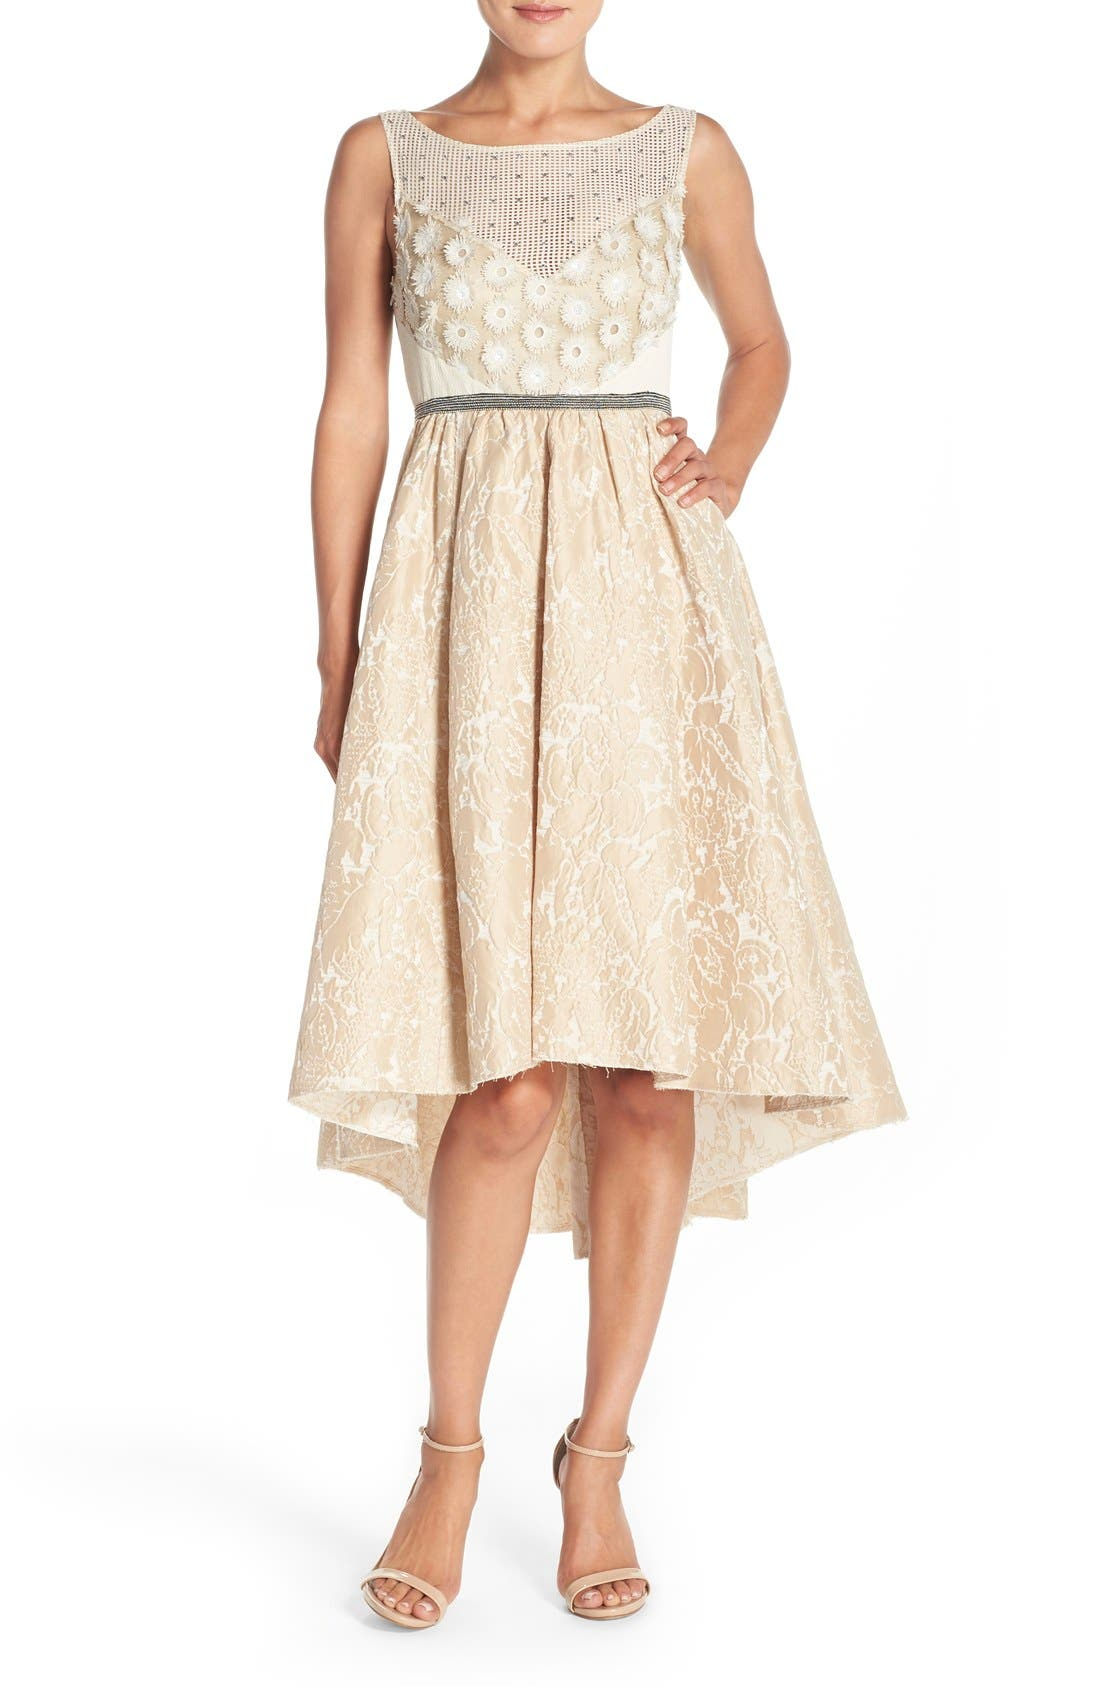 Alternate Image 1 Selected - Tracy Reese Sequin Appliqué Woven Fit & Flare Dress